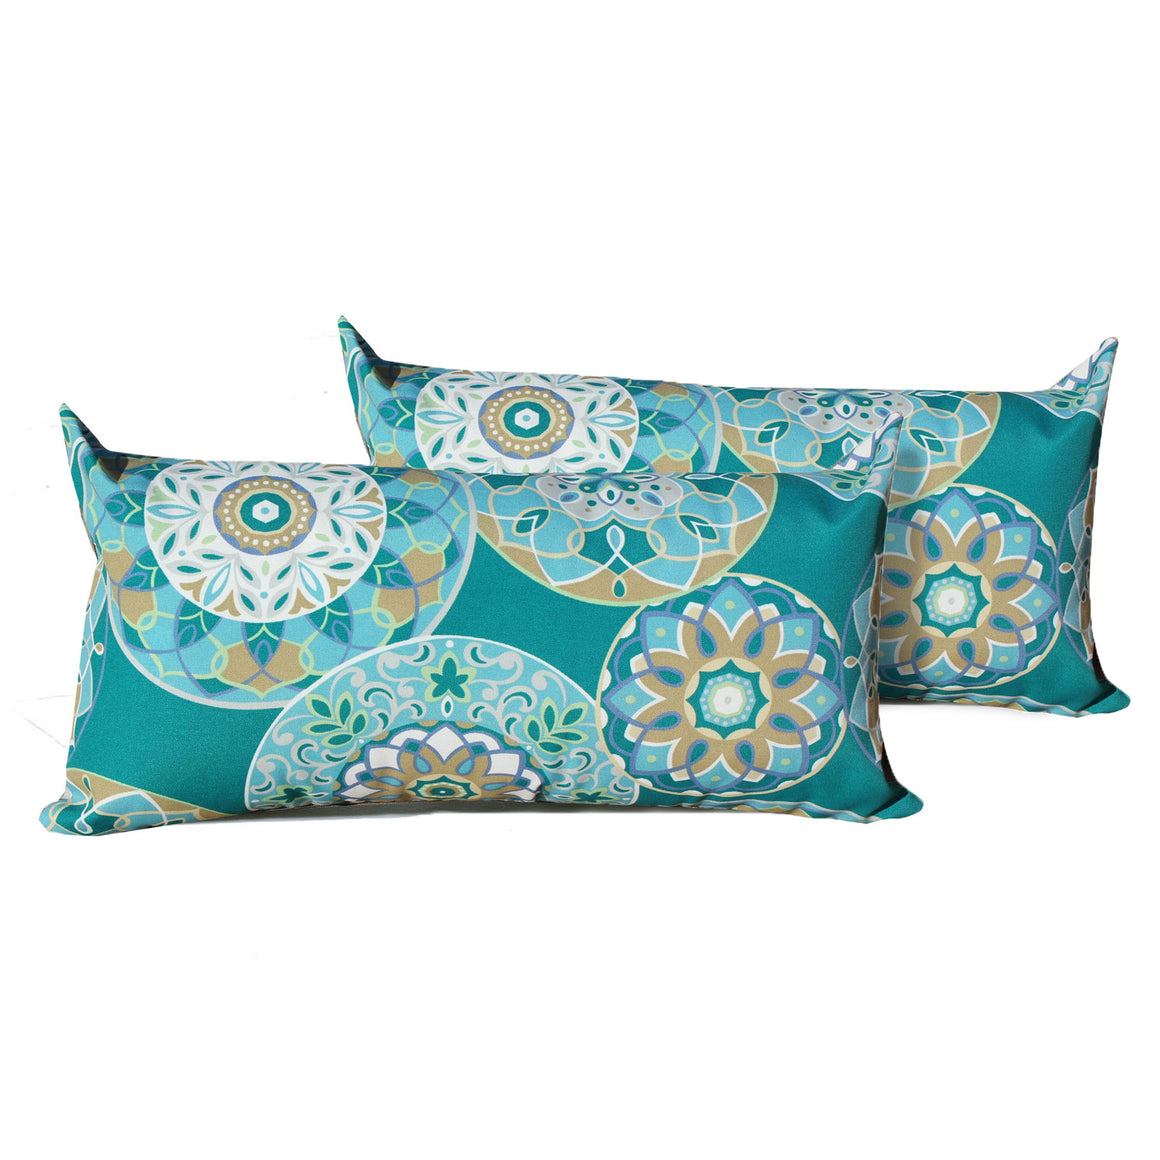 Teal Sundial Outdoor Throw Pillows Rectangle Set of 2 , TK Classics- grayburd